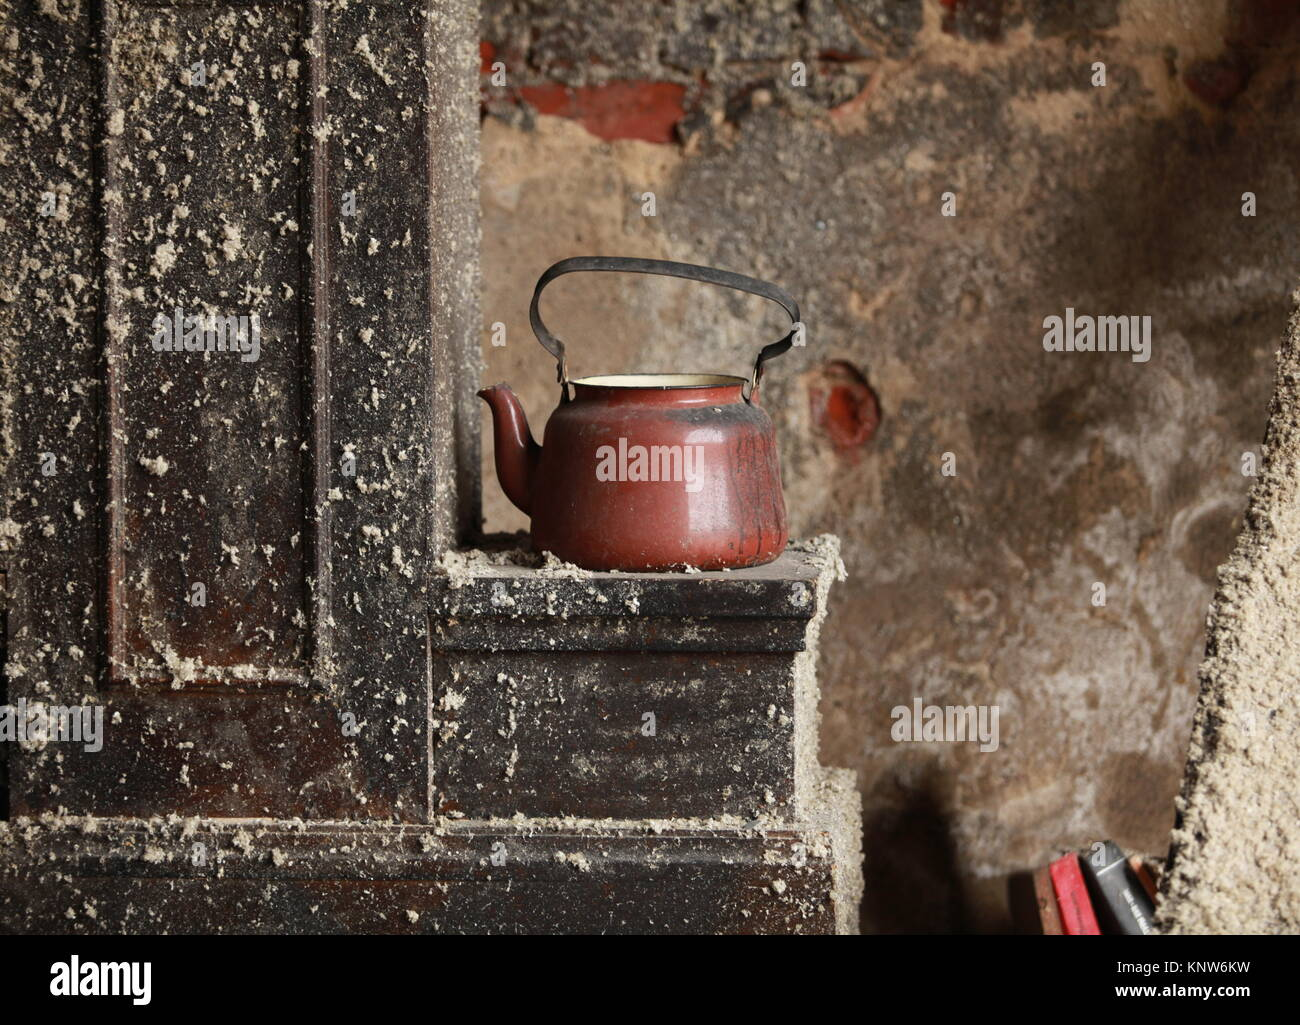 old kettle on the stove an abandoned house - Stock Image